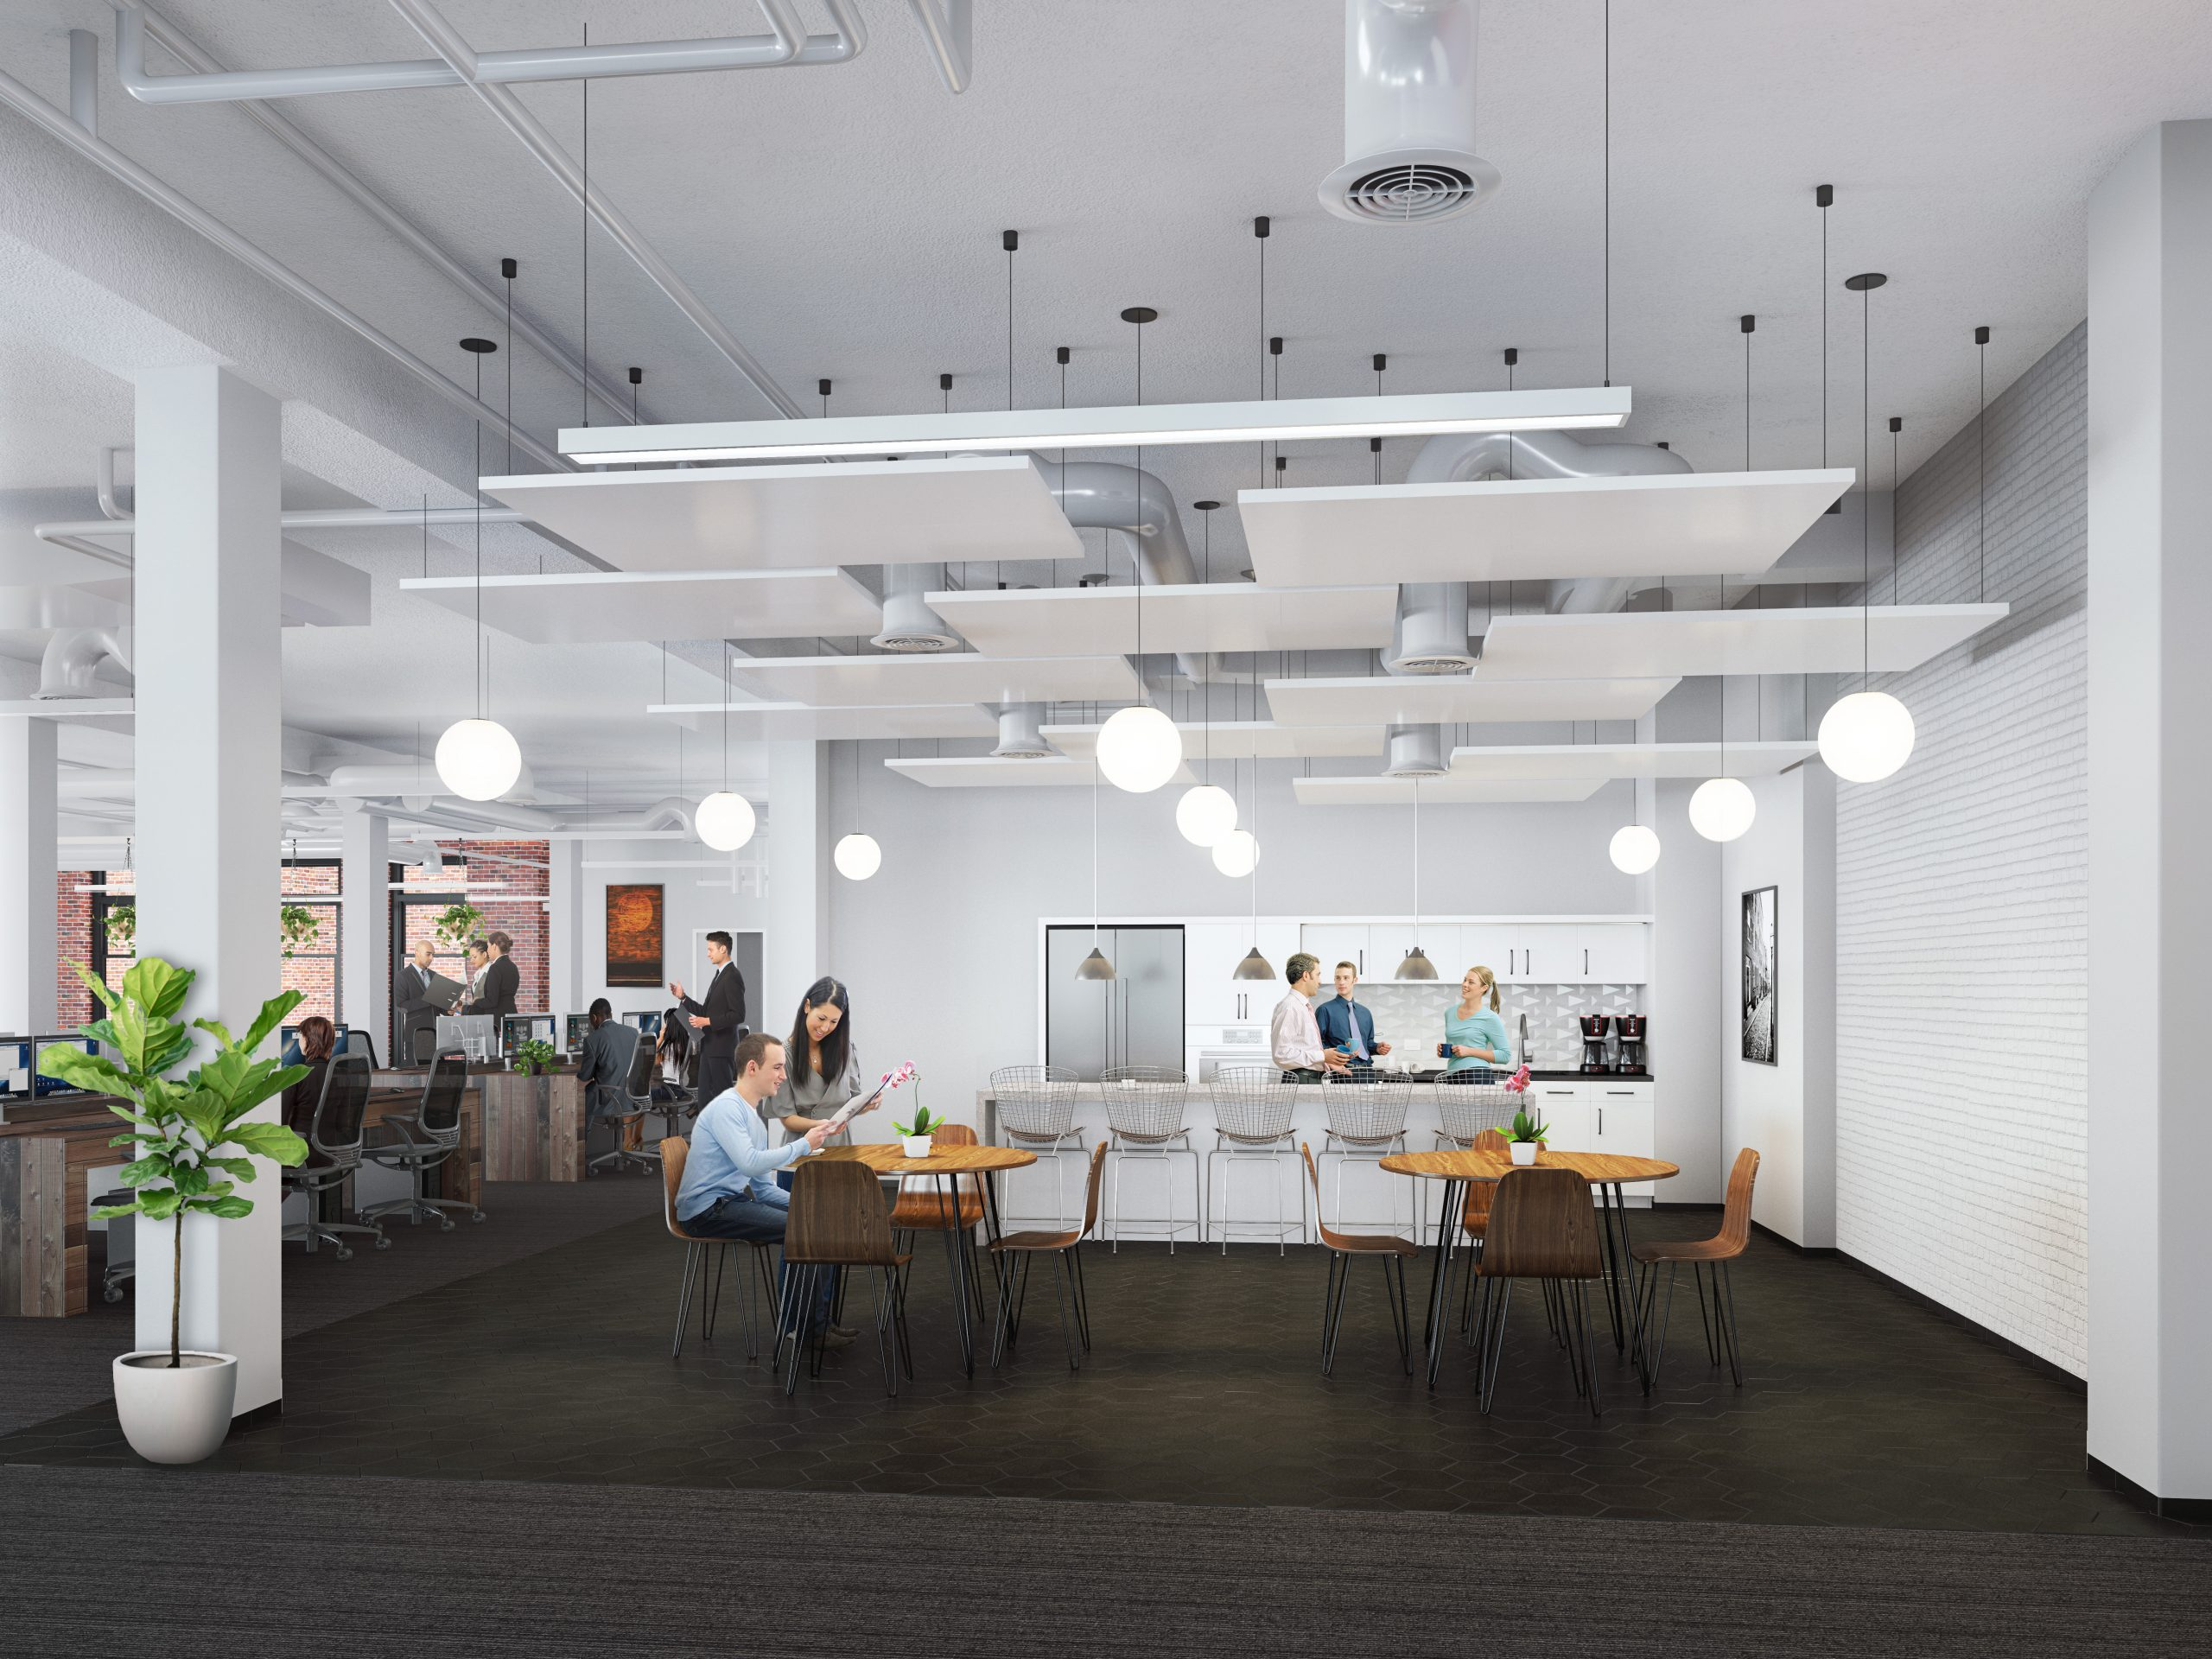 2019-07-05_16027-4th-lv-office-rendering-399-2